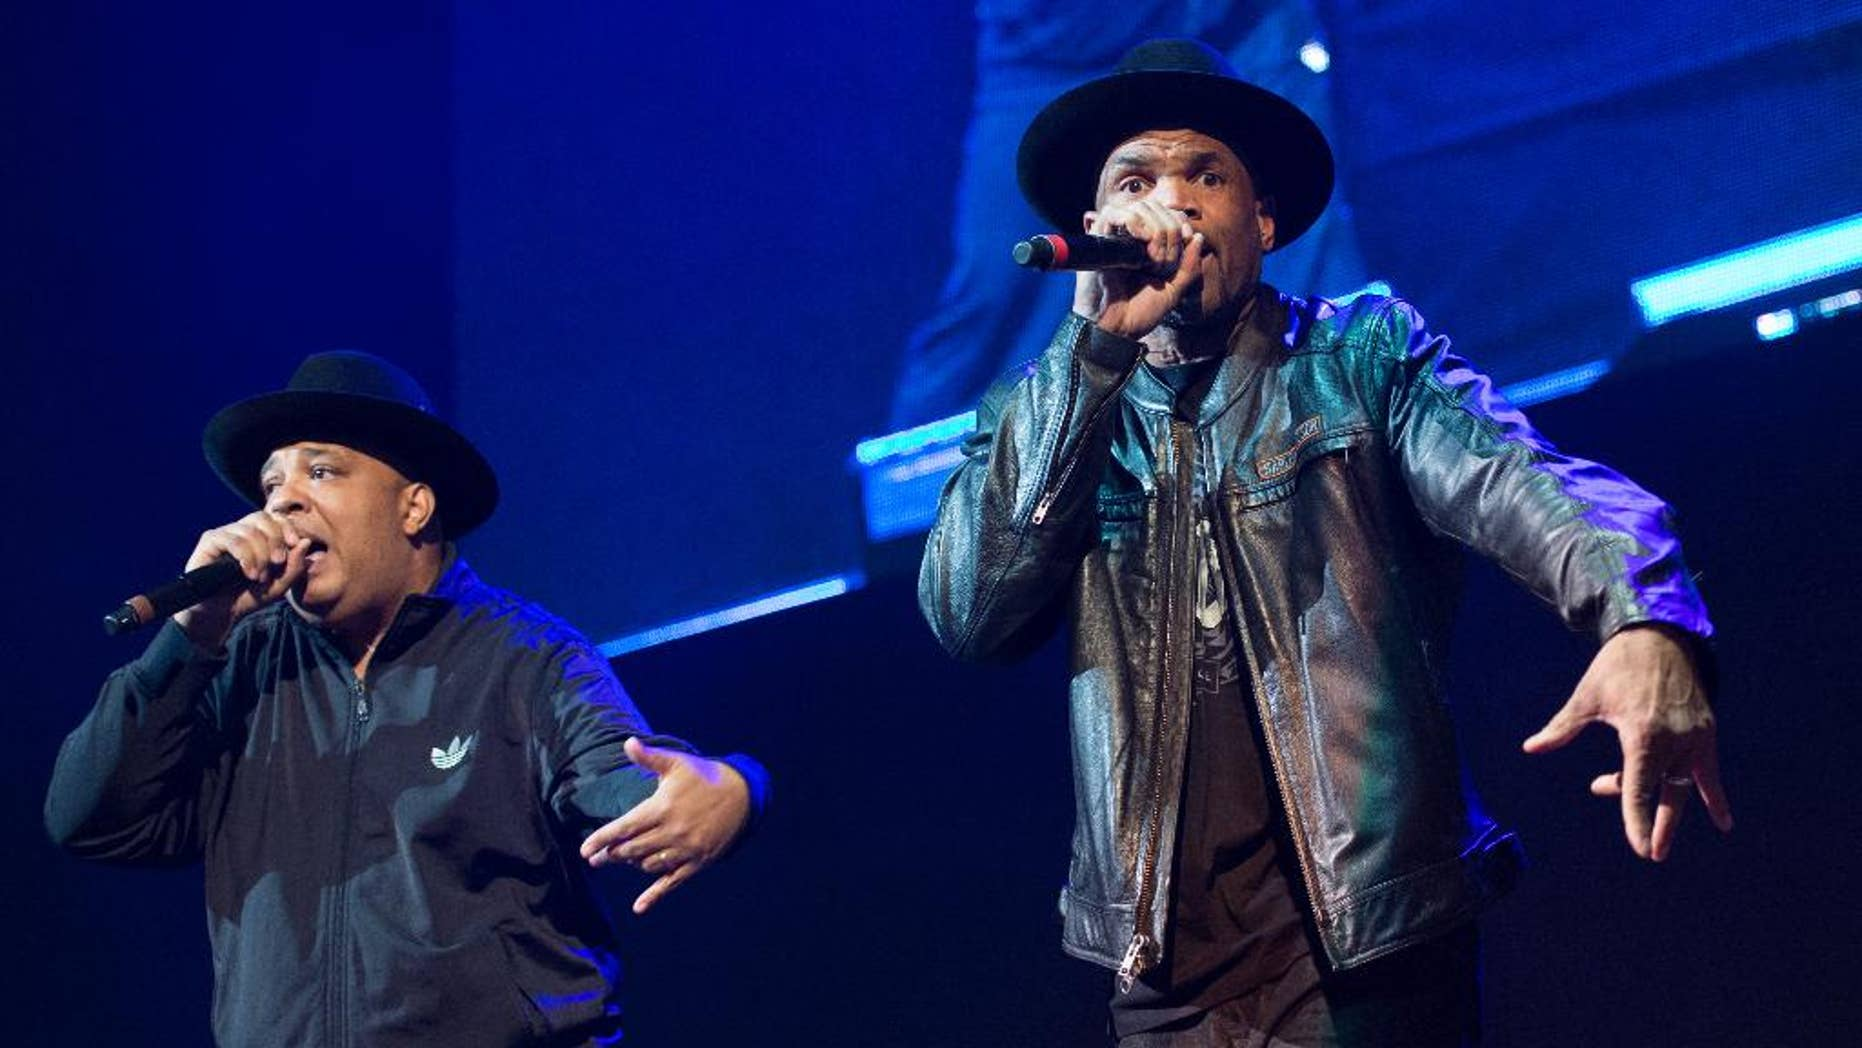 FILE - In this Dec. 19, 2014 file photo, Joseph Simmons, left, and Darryl McDaniels of Run DMC perform at Christmas in Brooklyn at the Barclays Center in the Brooklyn borough of New York. Run DMC is expected to open for the Red Hot Chili Peppers at the sixth-annual DirecTV Super Saturday Night concert in San Francisco the night before the Super Bowl. (Photo by Scott Roth/Invision/AP, File)